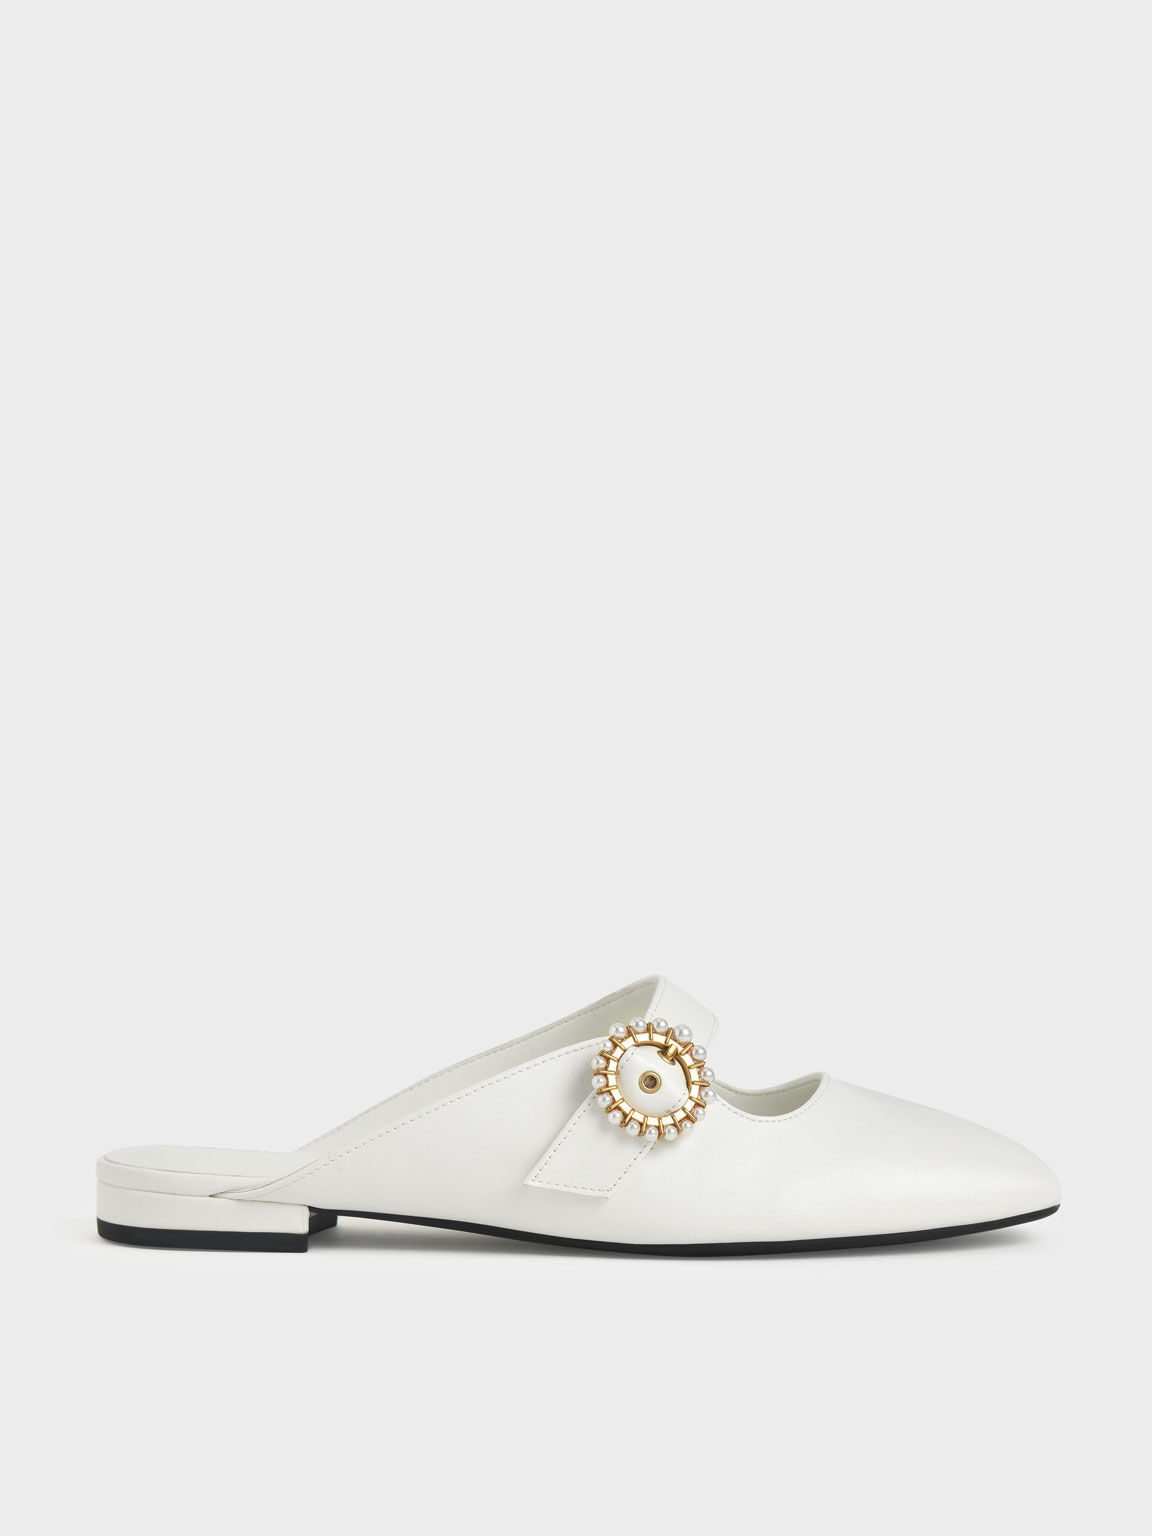 Beaded Buckle Mules, White, hi-res